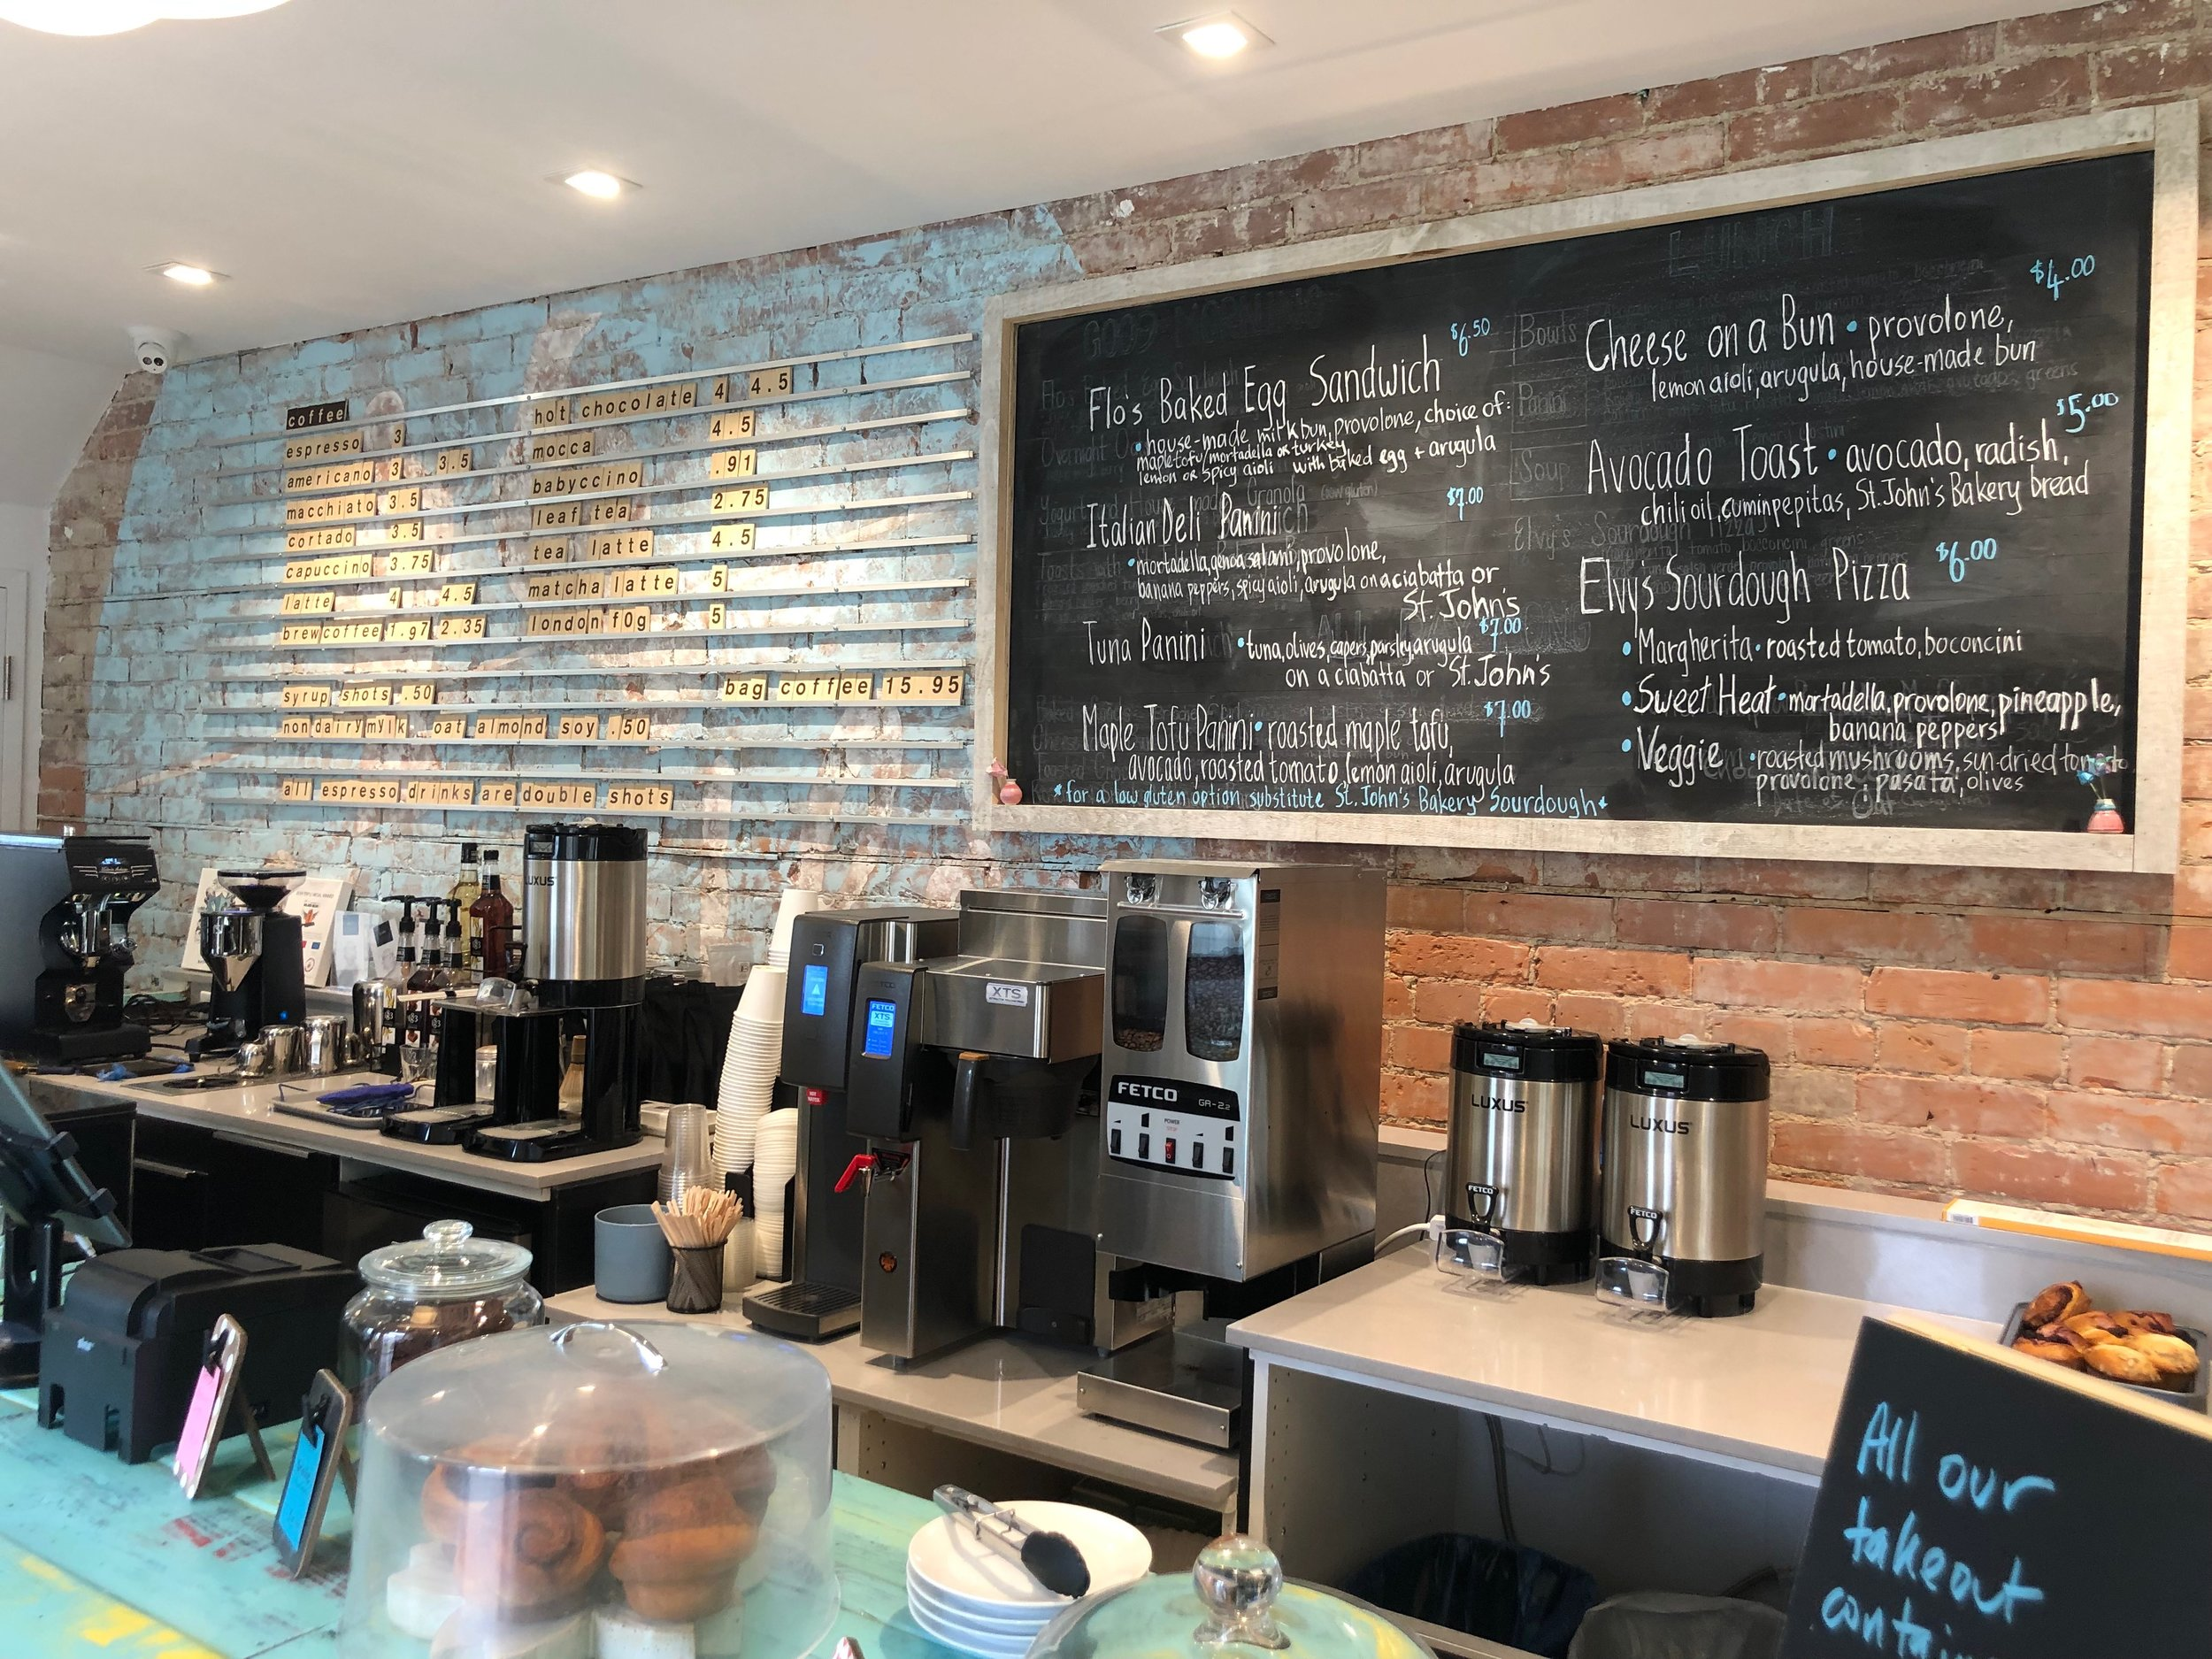 Many homemade and gluten free options are available at your newly opened cafe on Gerrard St East // FLEUR BOOMSMA